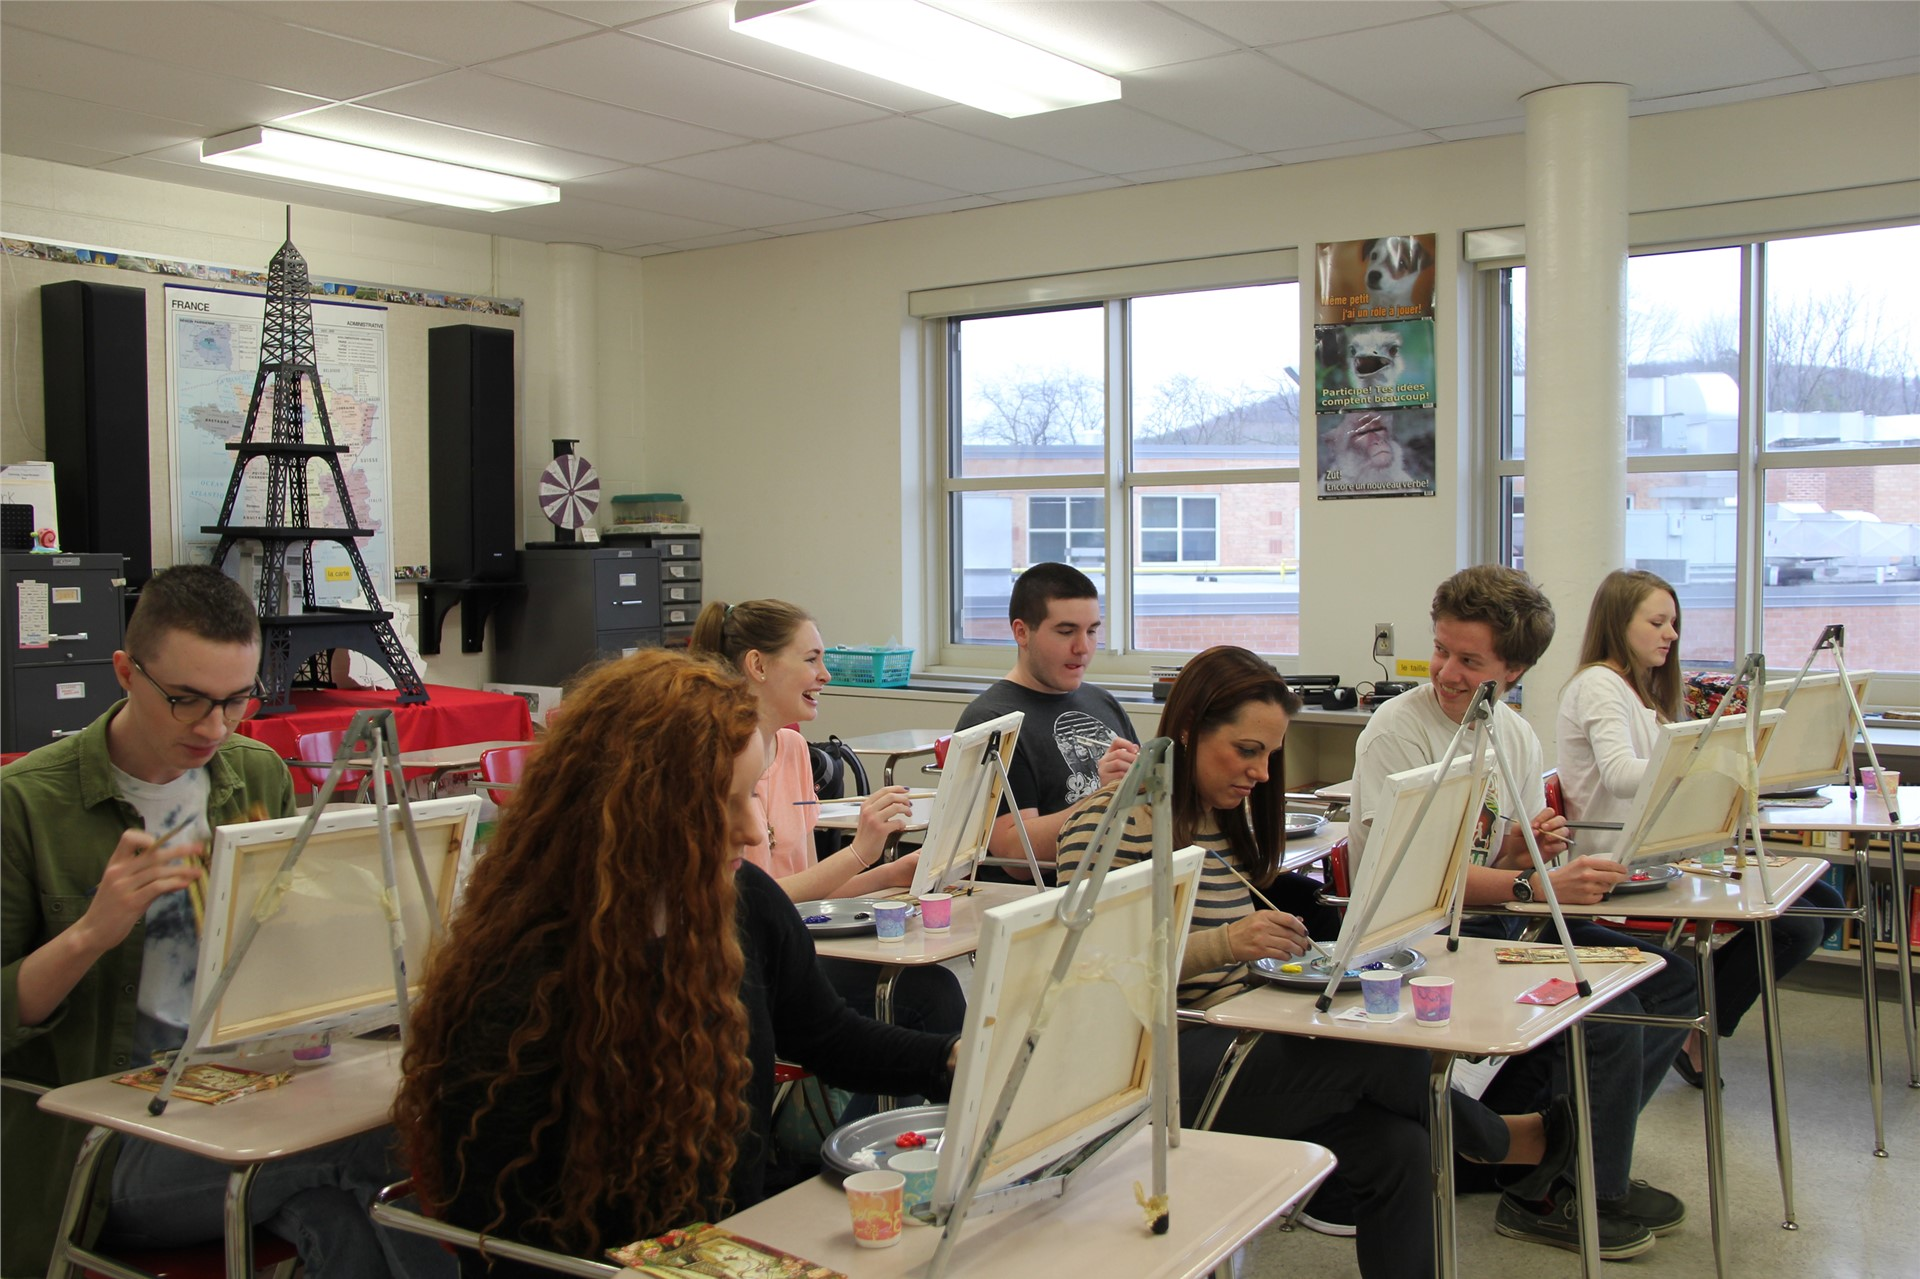 students painting at desks